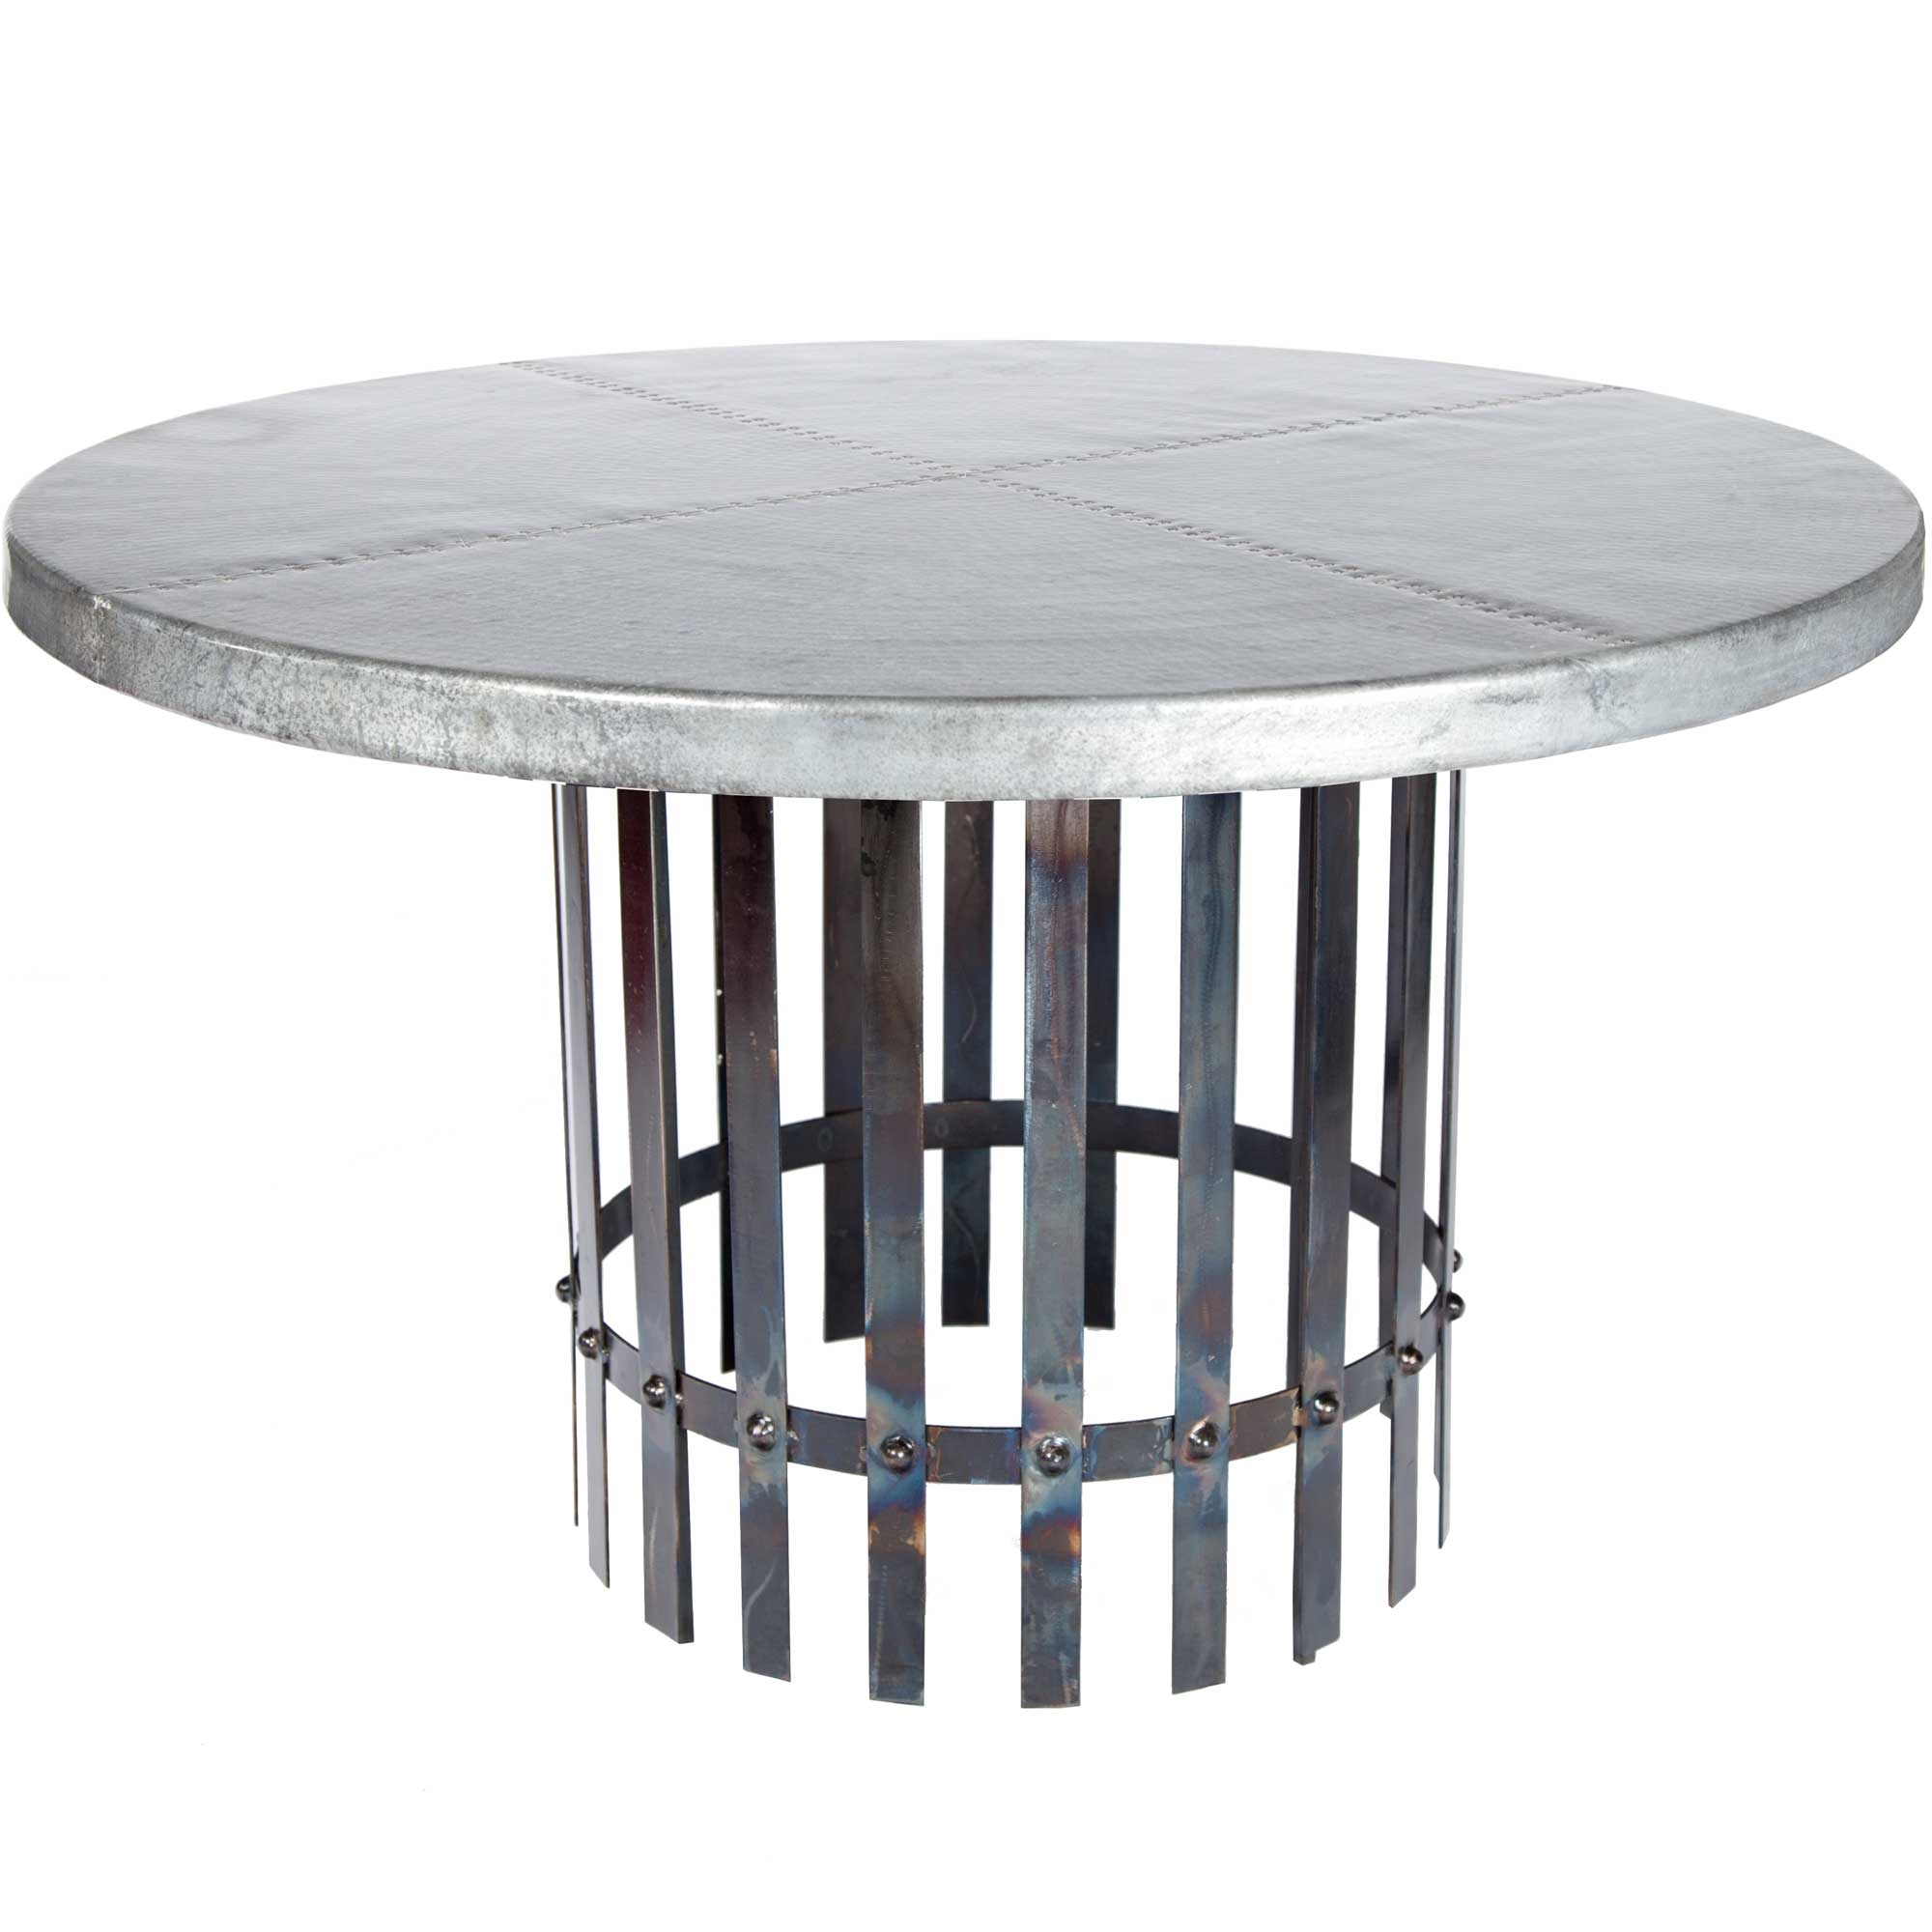 "Ashton Iron Dining Table with 54"" Round Hammered Zinc Top"